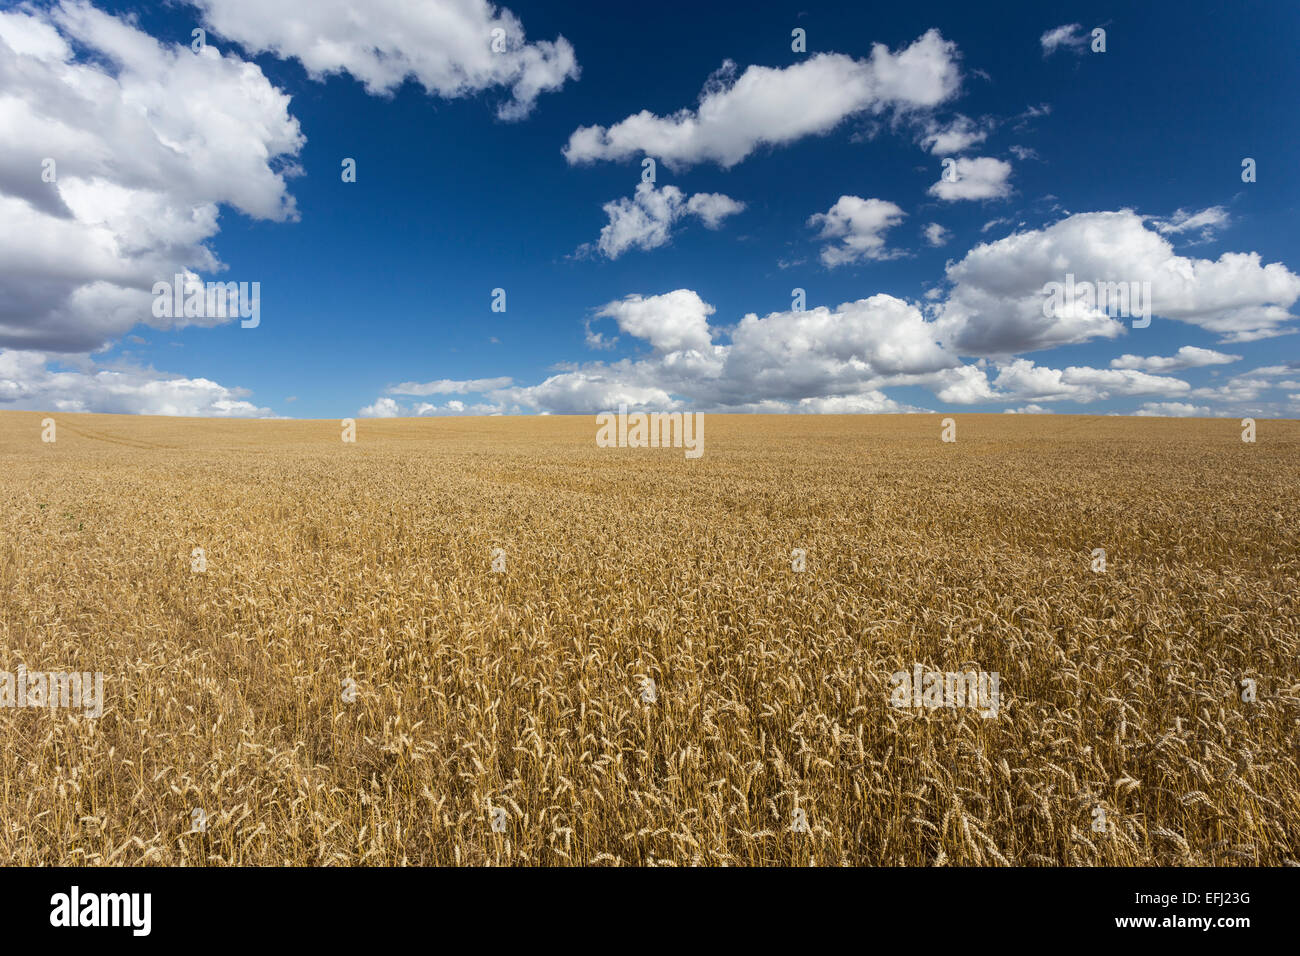 Champ de blé, ferme, Ickleford Cadwell, Hitchin, Herts, Angleterre, Royaume-Uni Photo Stock